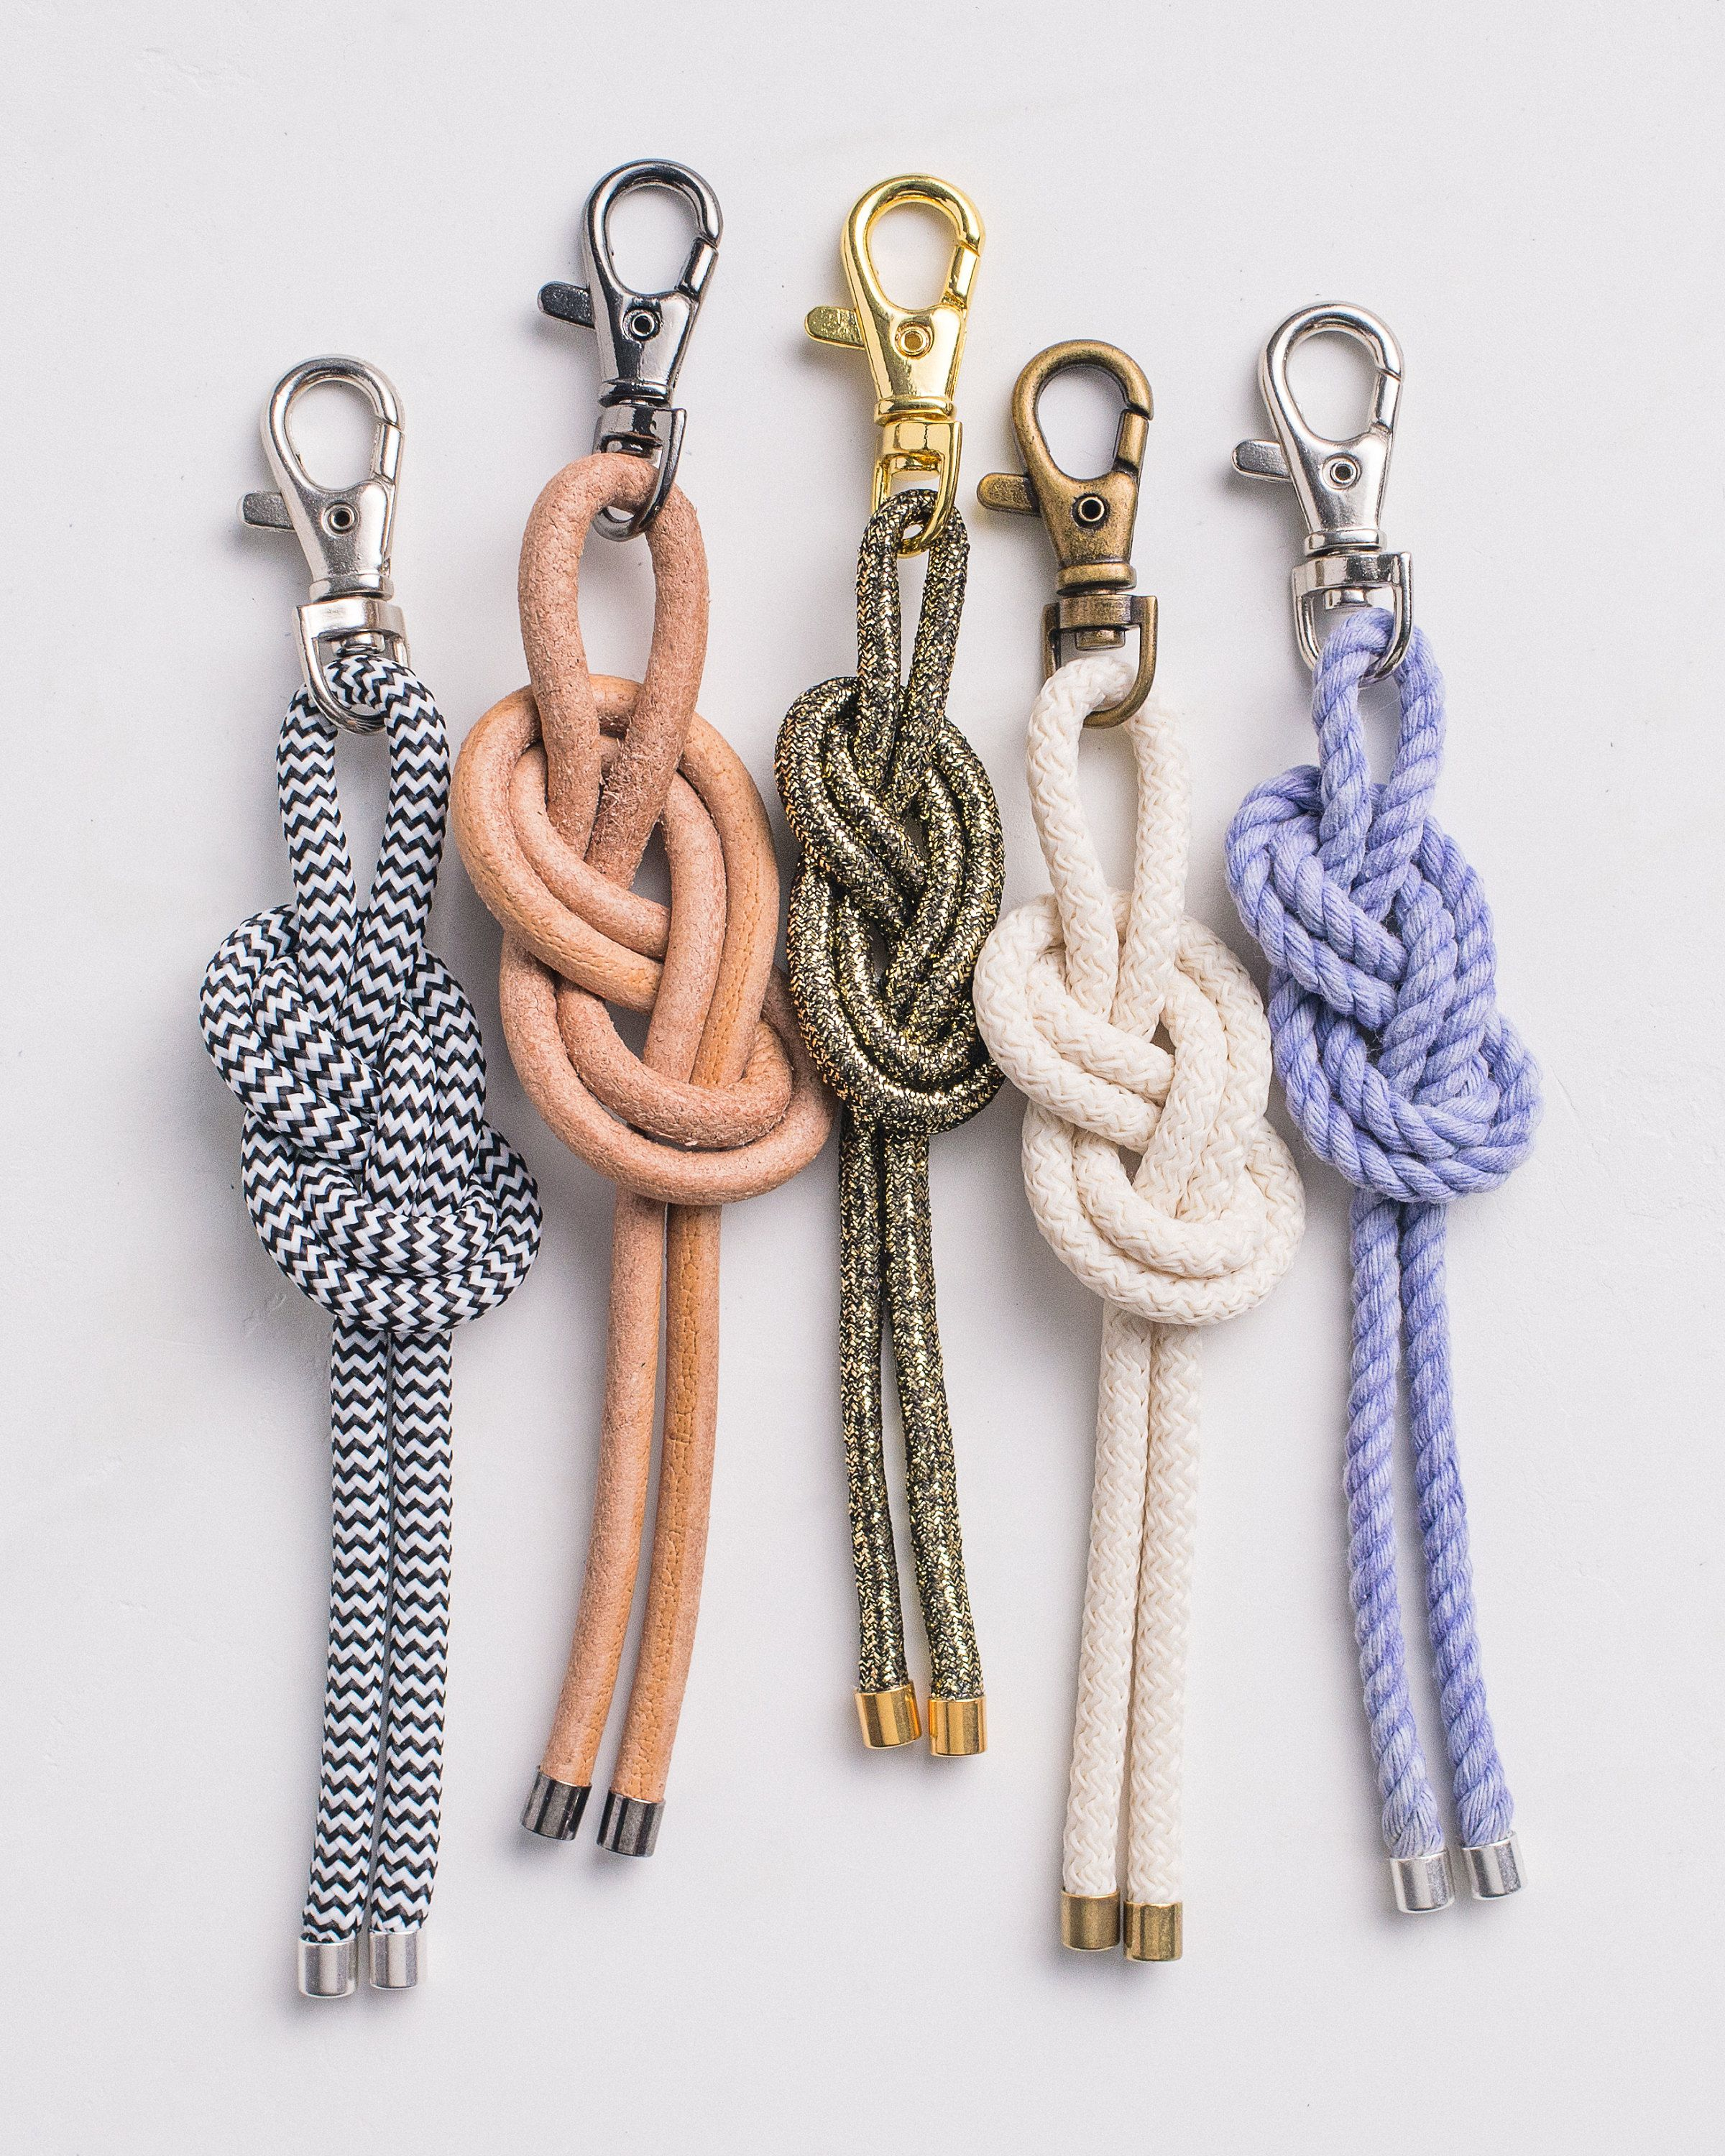 With our own hands we create crafts from threads - a keychain-heart. A master class with a photo will show how to weave a keychain